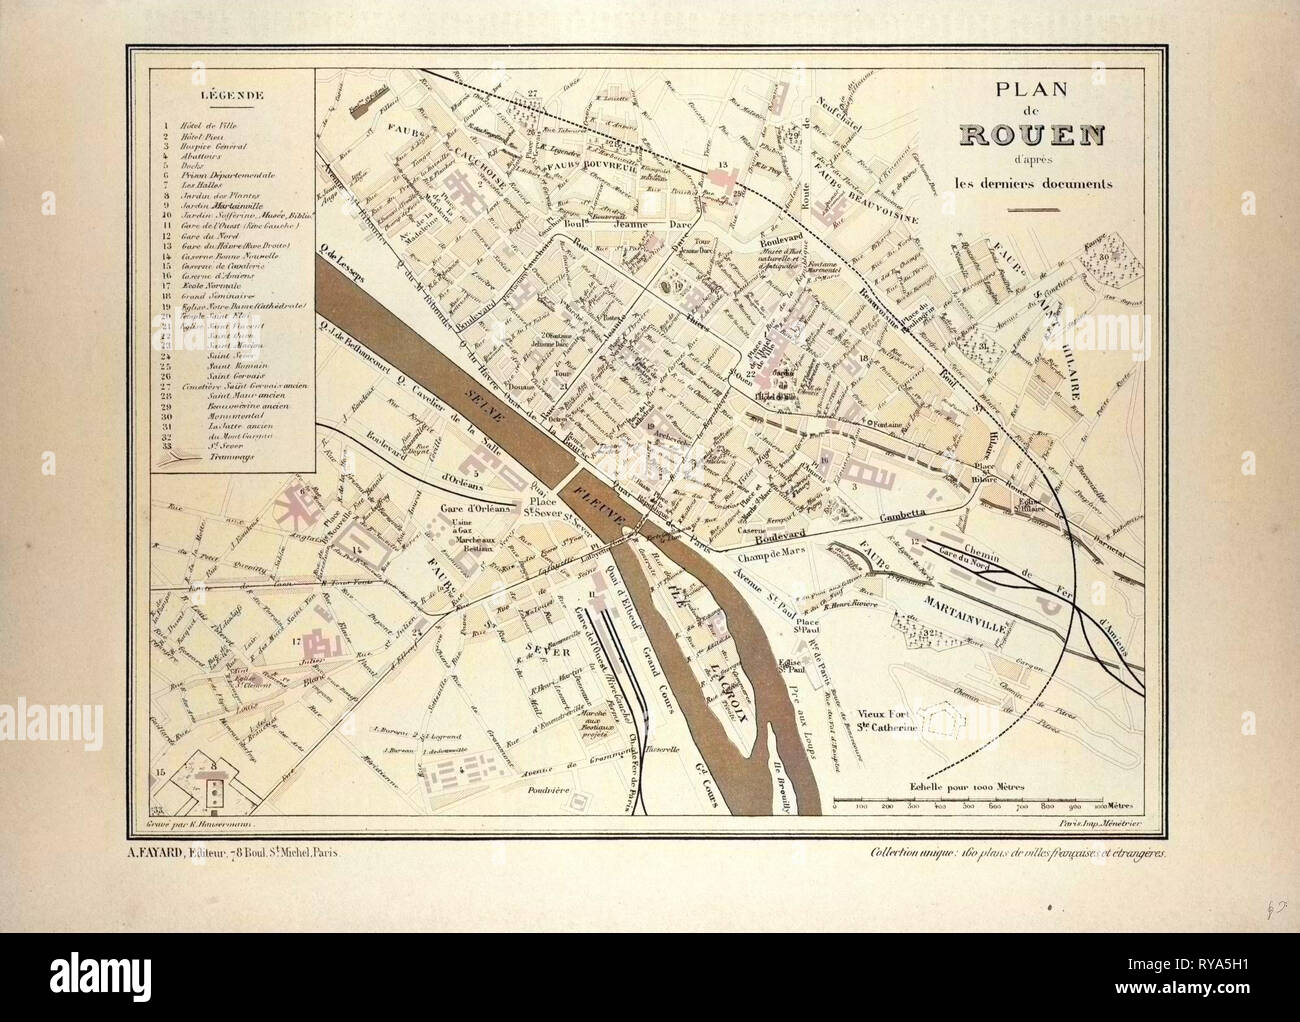 Map Of France Rouen.Map Of Rouen France Stock Photo 240554413 Alamy